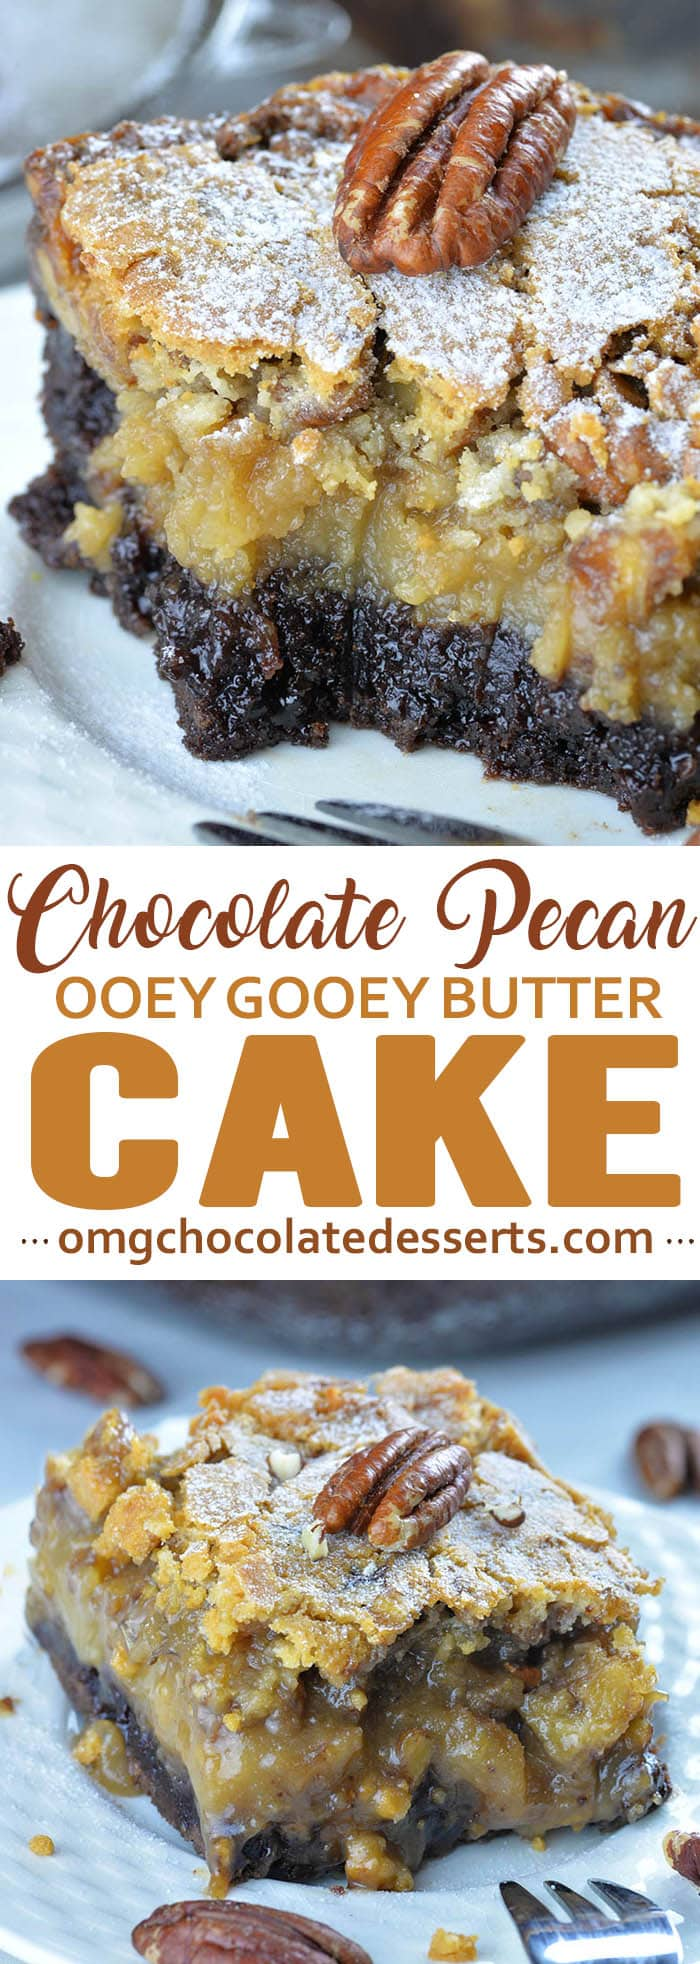 Chocolate pecan ooey gooey butter cake is very rich, sweet and velvety cake with crispy top layer of crust and molten lava in the center. Although, this cake looks like a gooey mess, it's melt-in-your-mouth-goooood!!